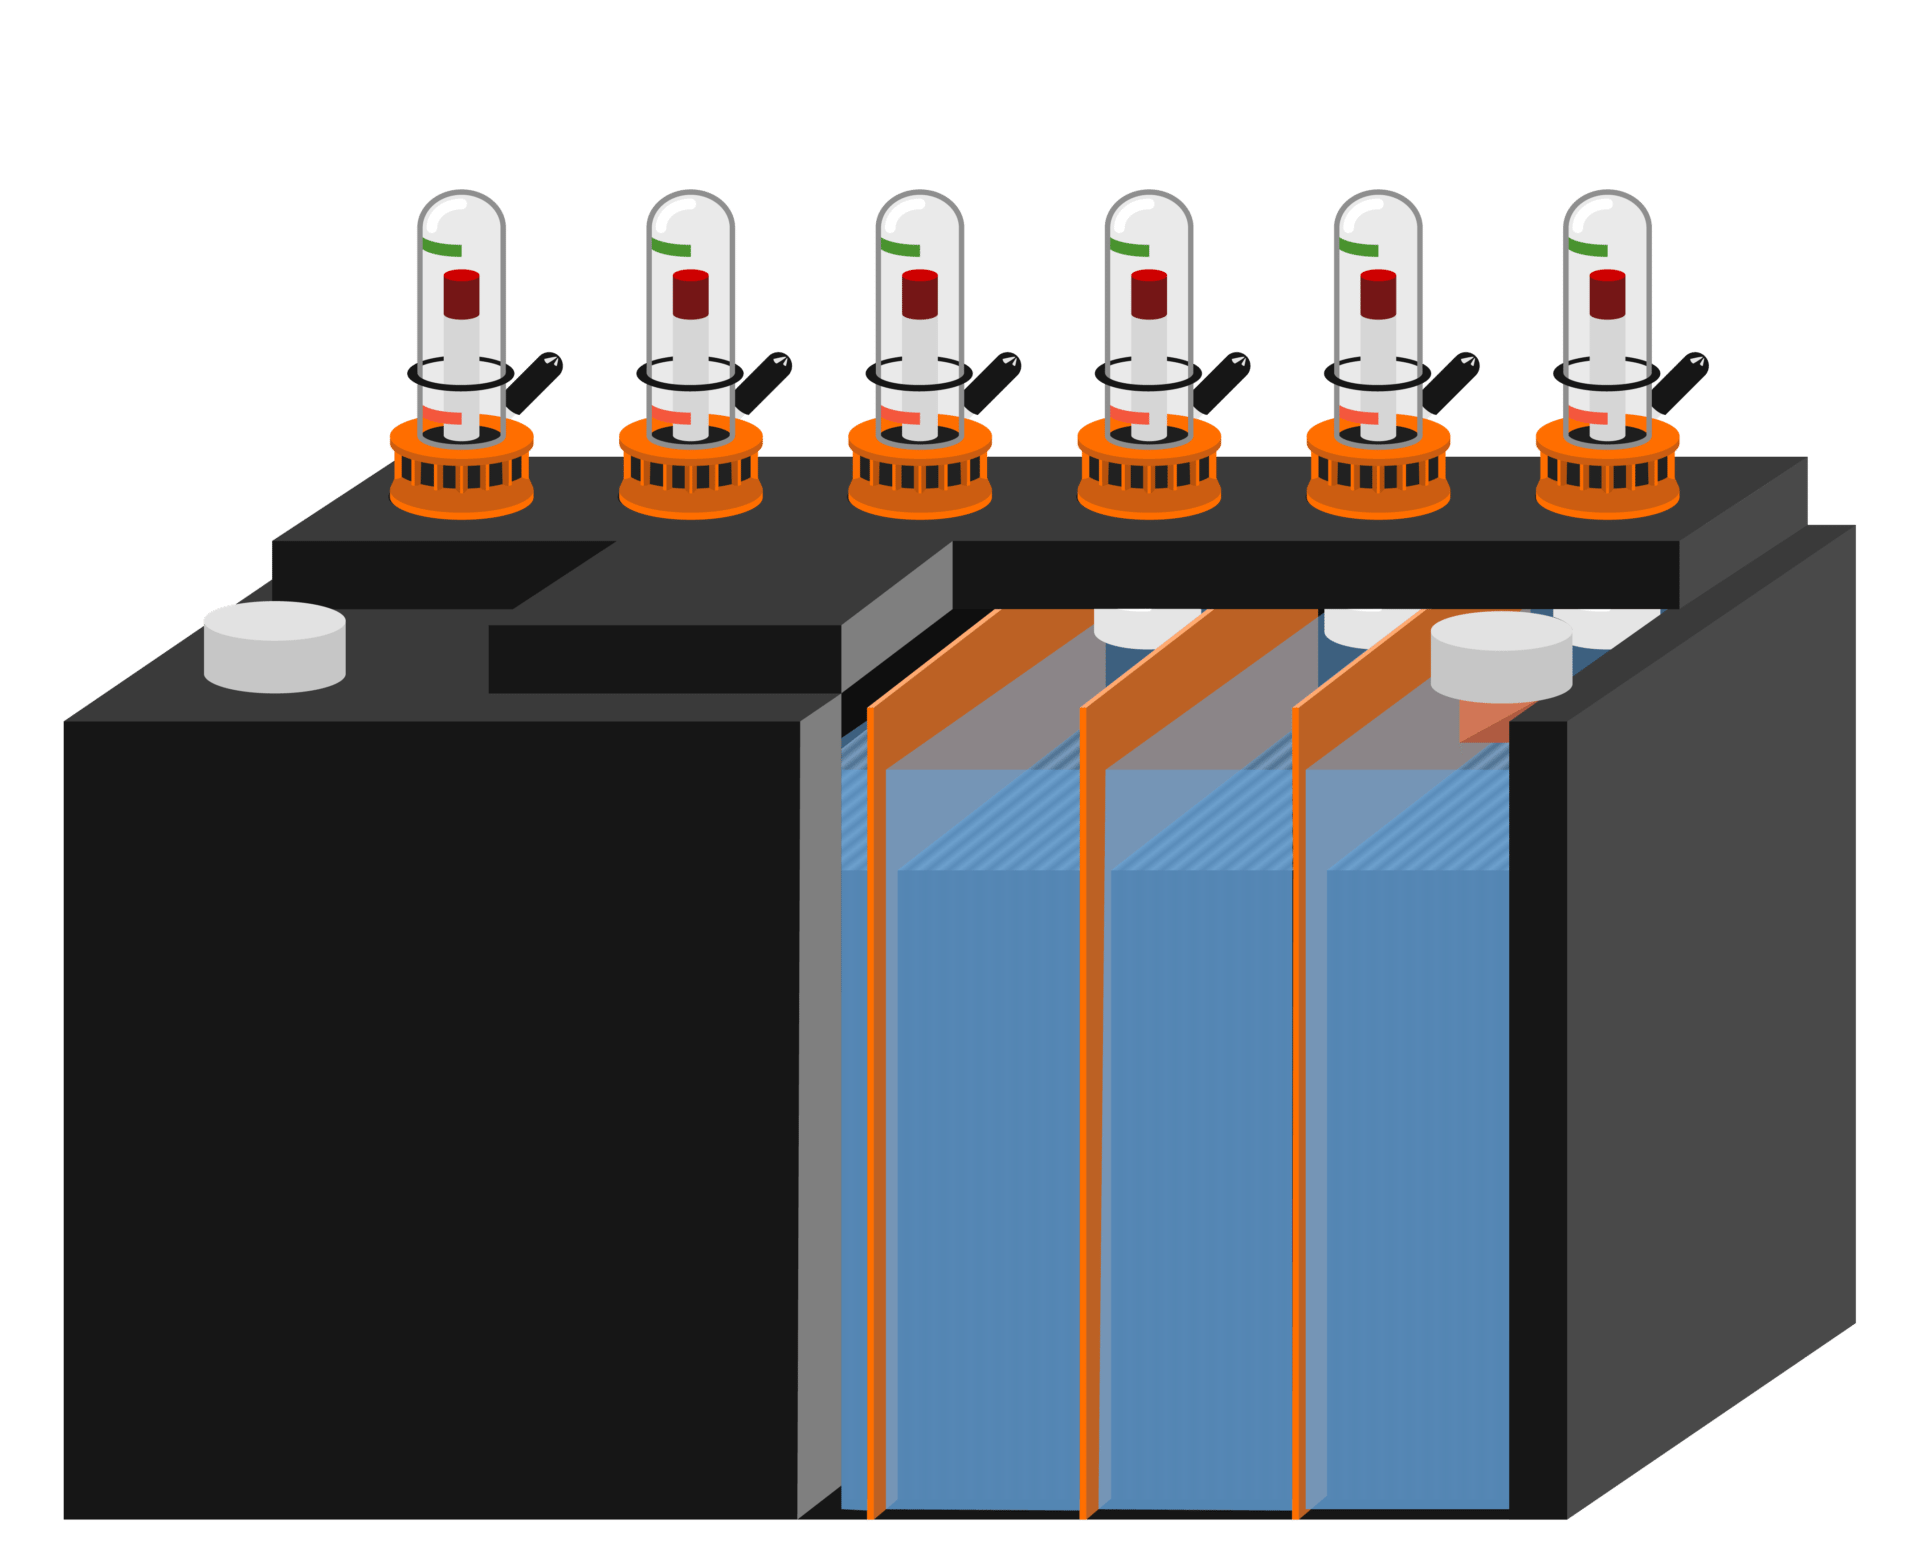 batterytesterillustration-04.png